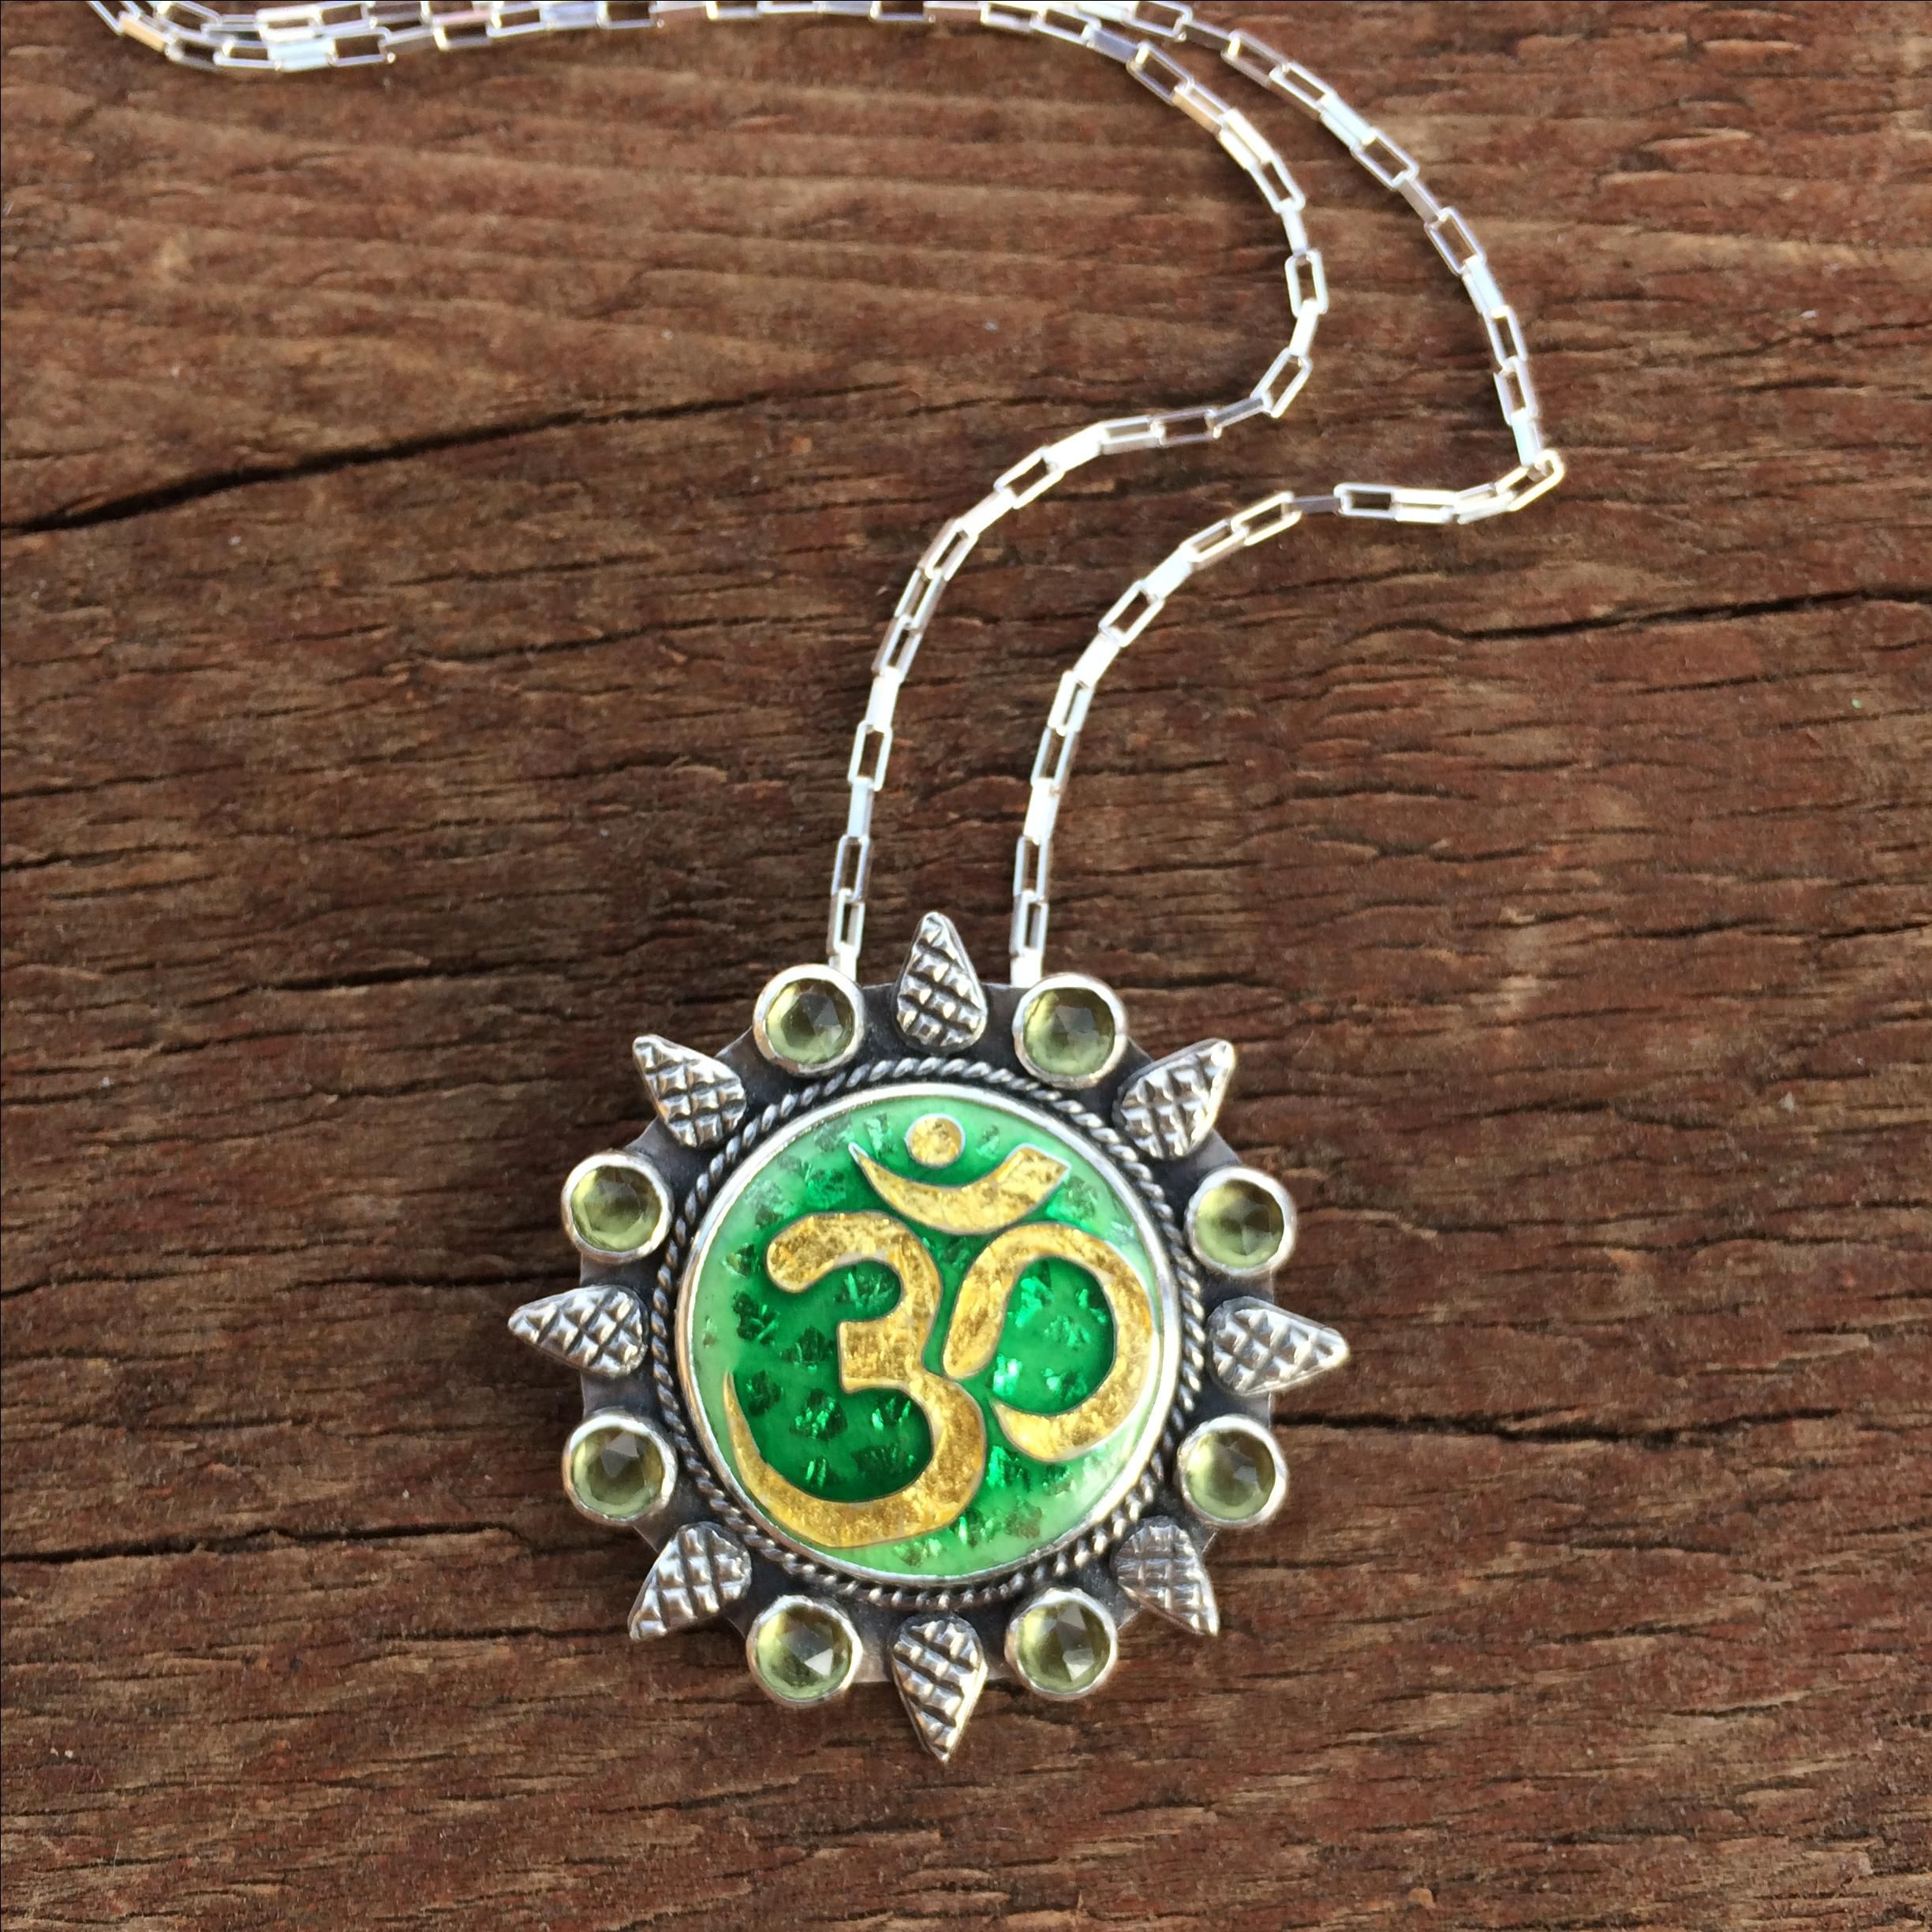 Buy A Custom Made Om Symbol Necklace And Pendant Yoga Statement